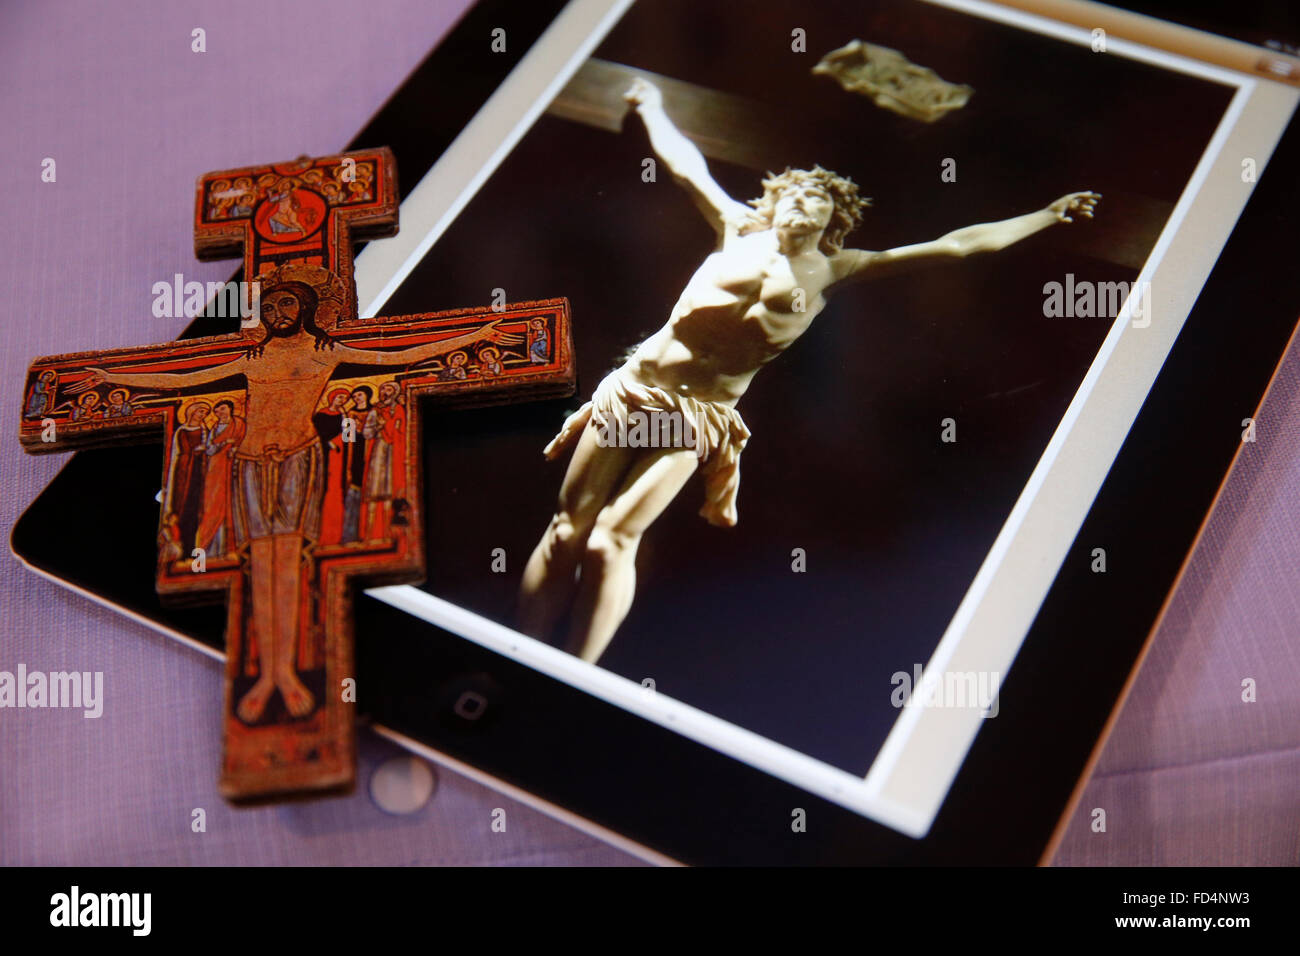 Picture of Jesus Christ on an Ipad in a church. - Stock Image